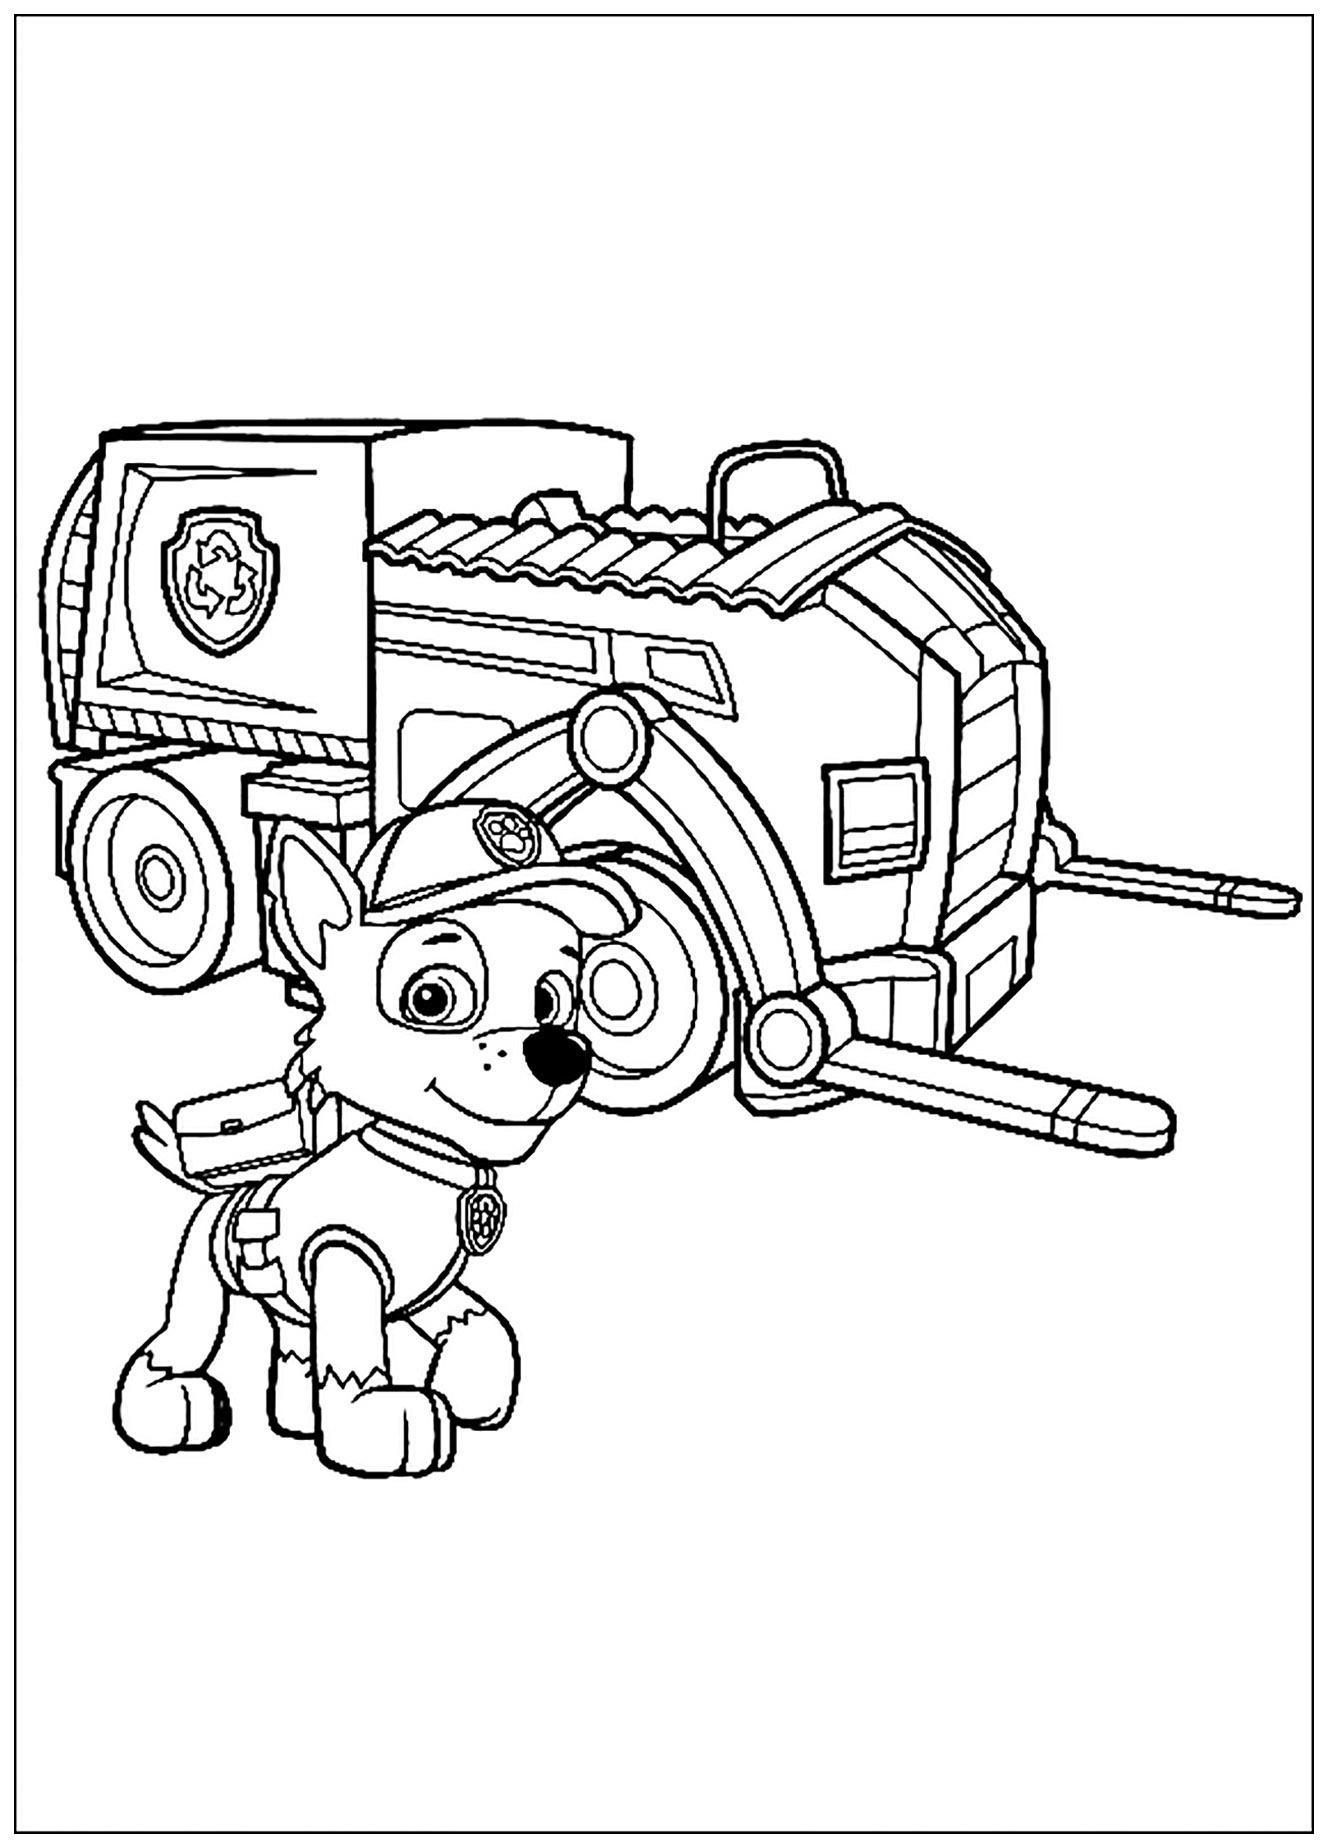 Paw Patrol coloring page to print and color for free